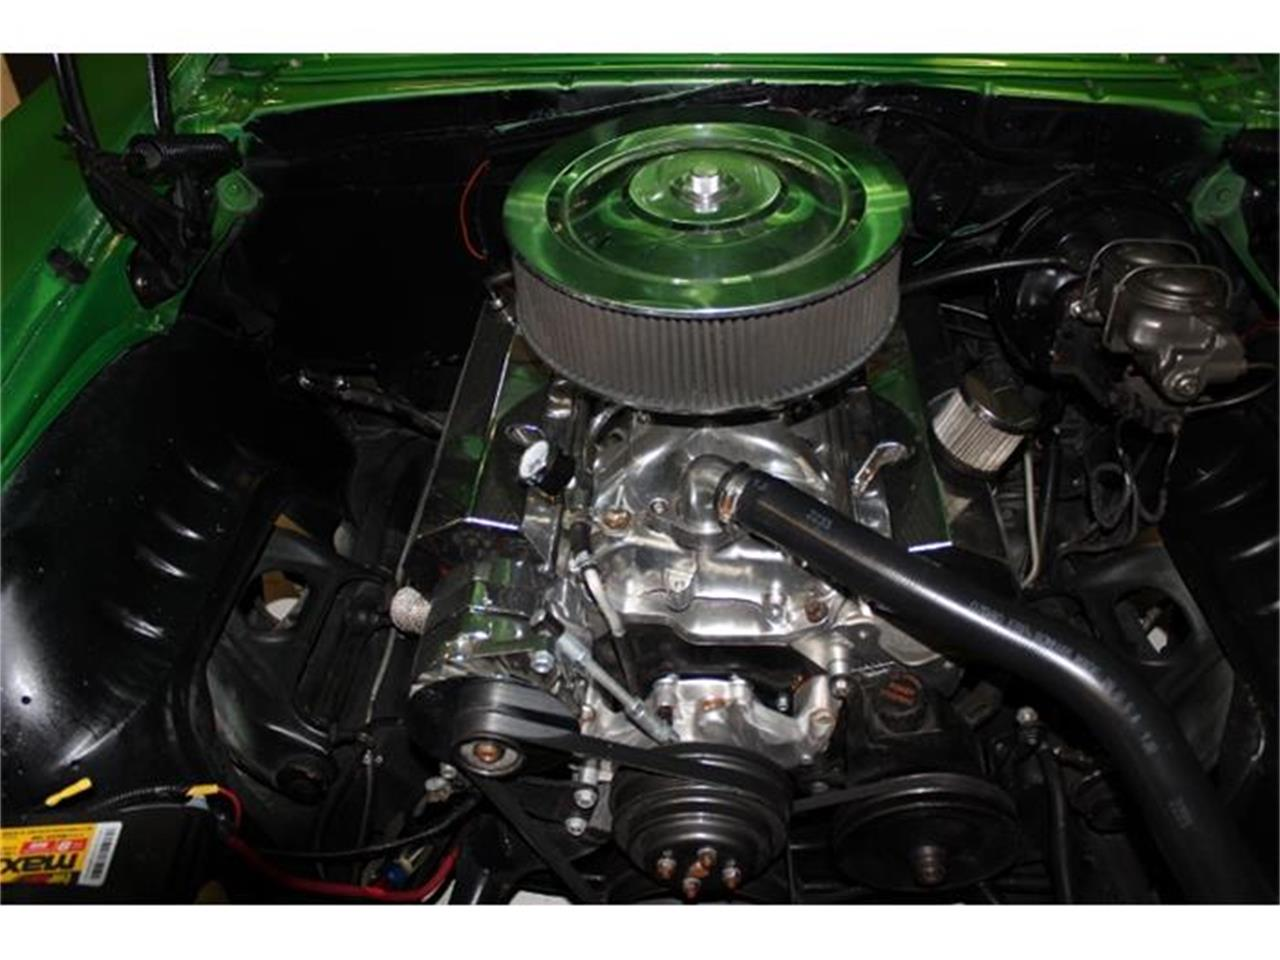 1969 Chevrolet Camaro SS for sale in Lillington, NC – photo 76